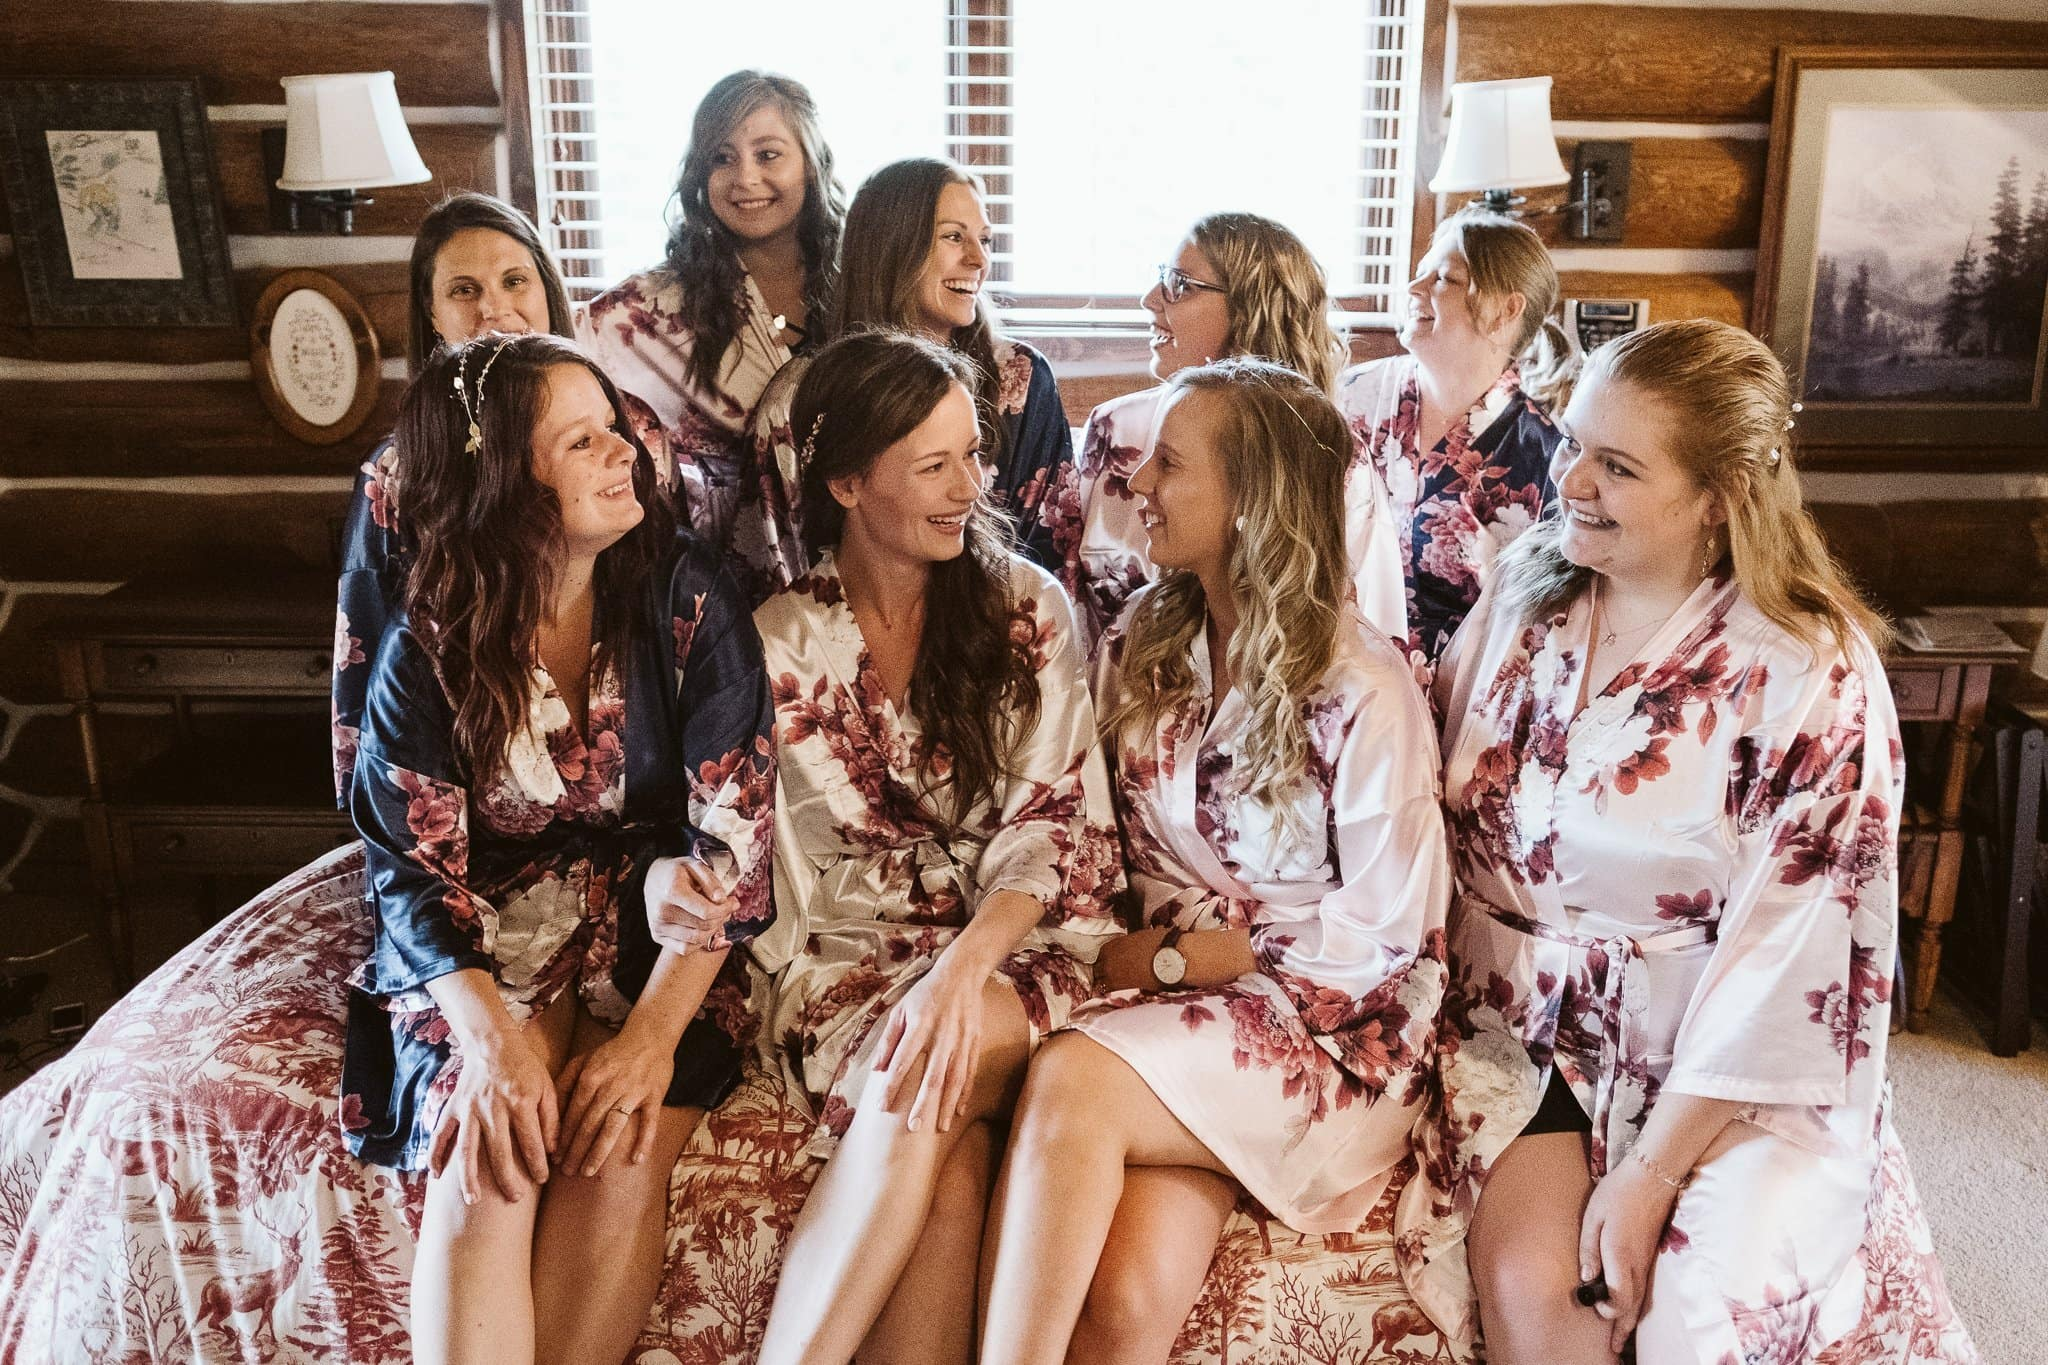 Bride and bridesmaids in matching robes on bed